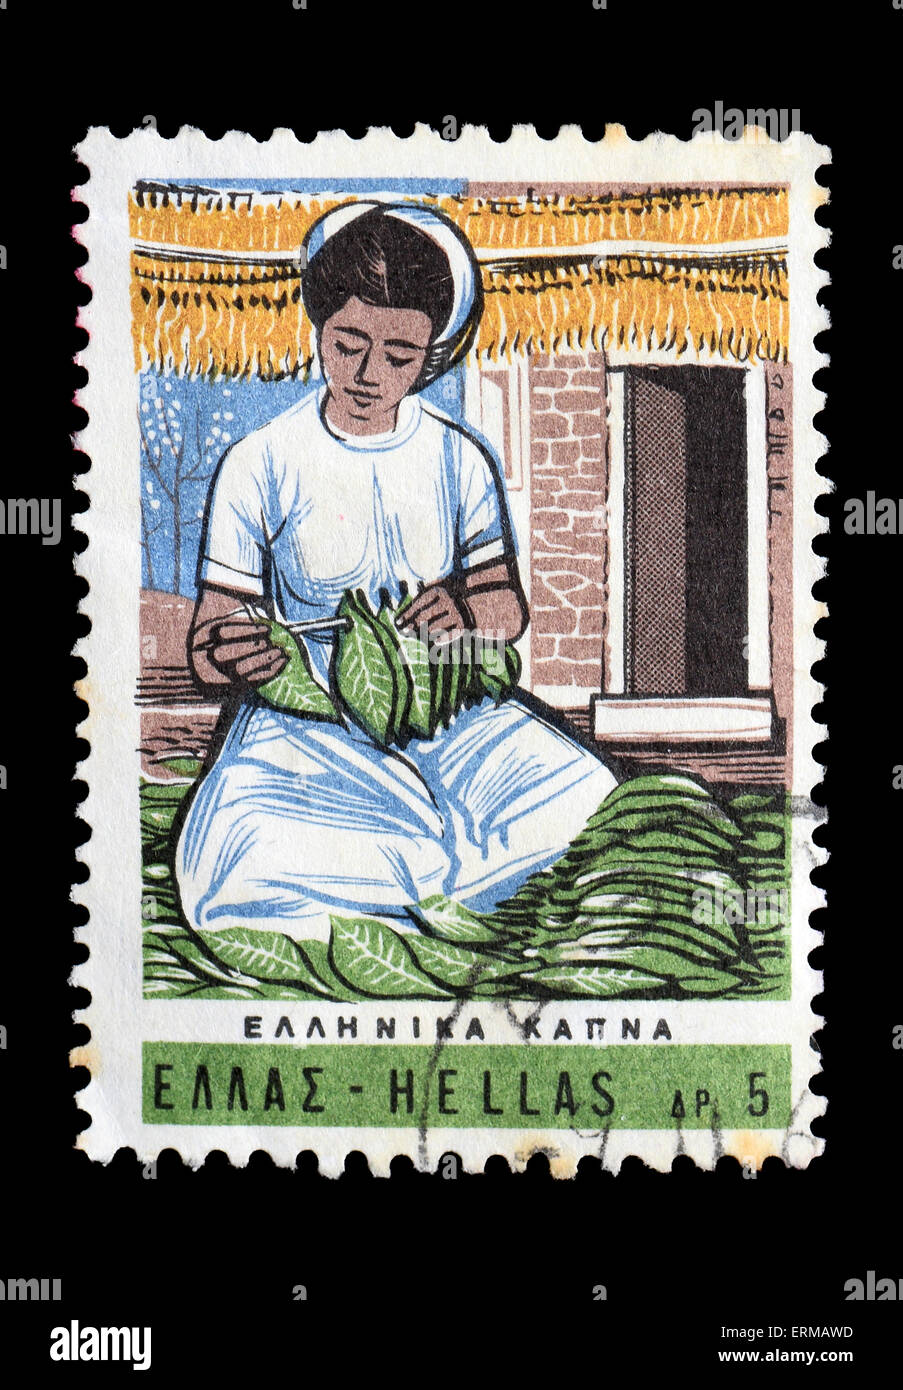 Woman farmer processing tobacco leaves vintage illustration on postage stamp printed for the Hellenic Post Office. - Stock Image